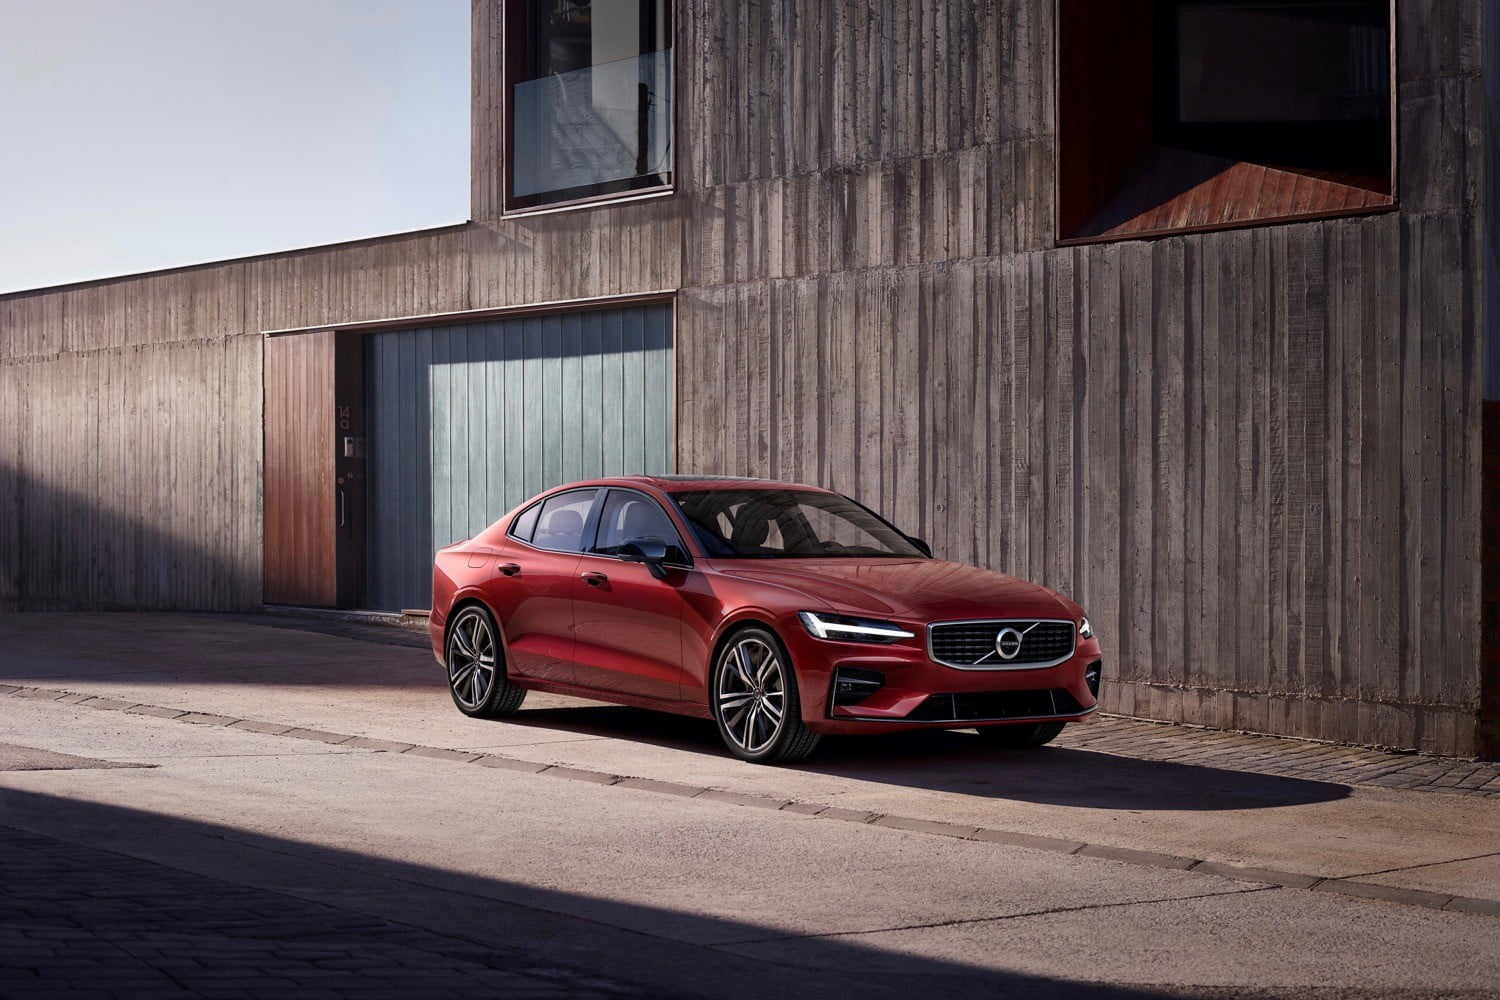 Volvo to impose a 112-mph speed limit on its cars in the name of safety